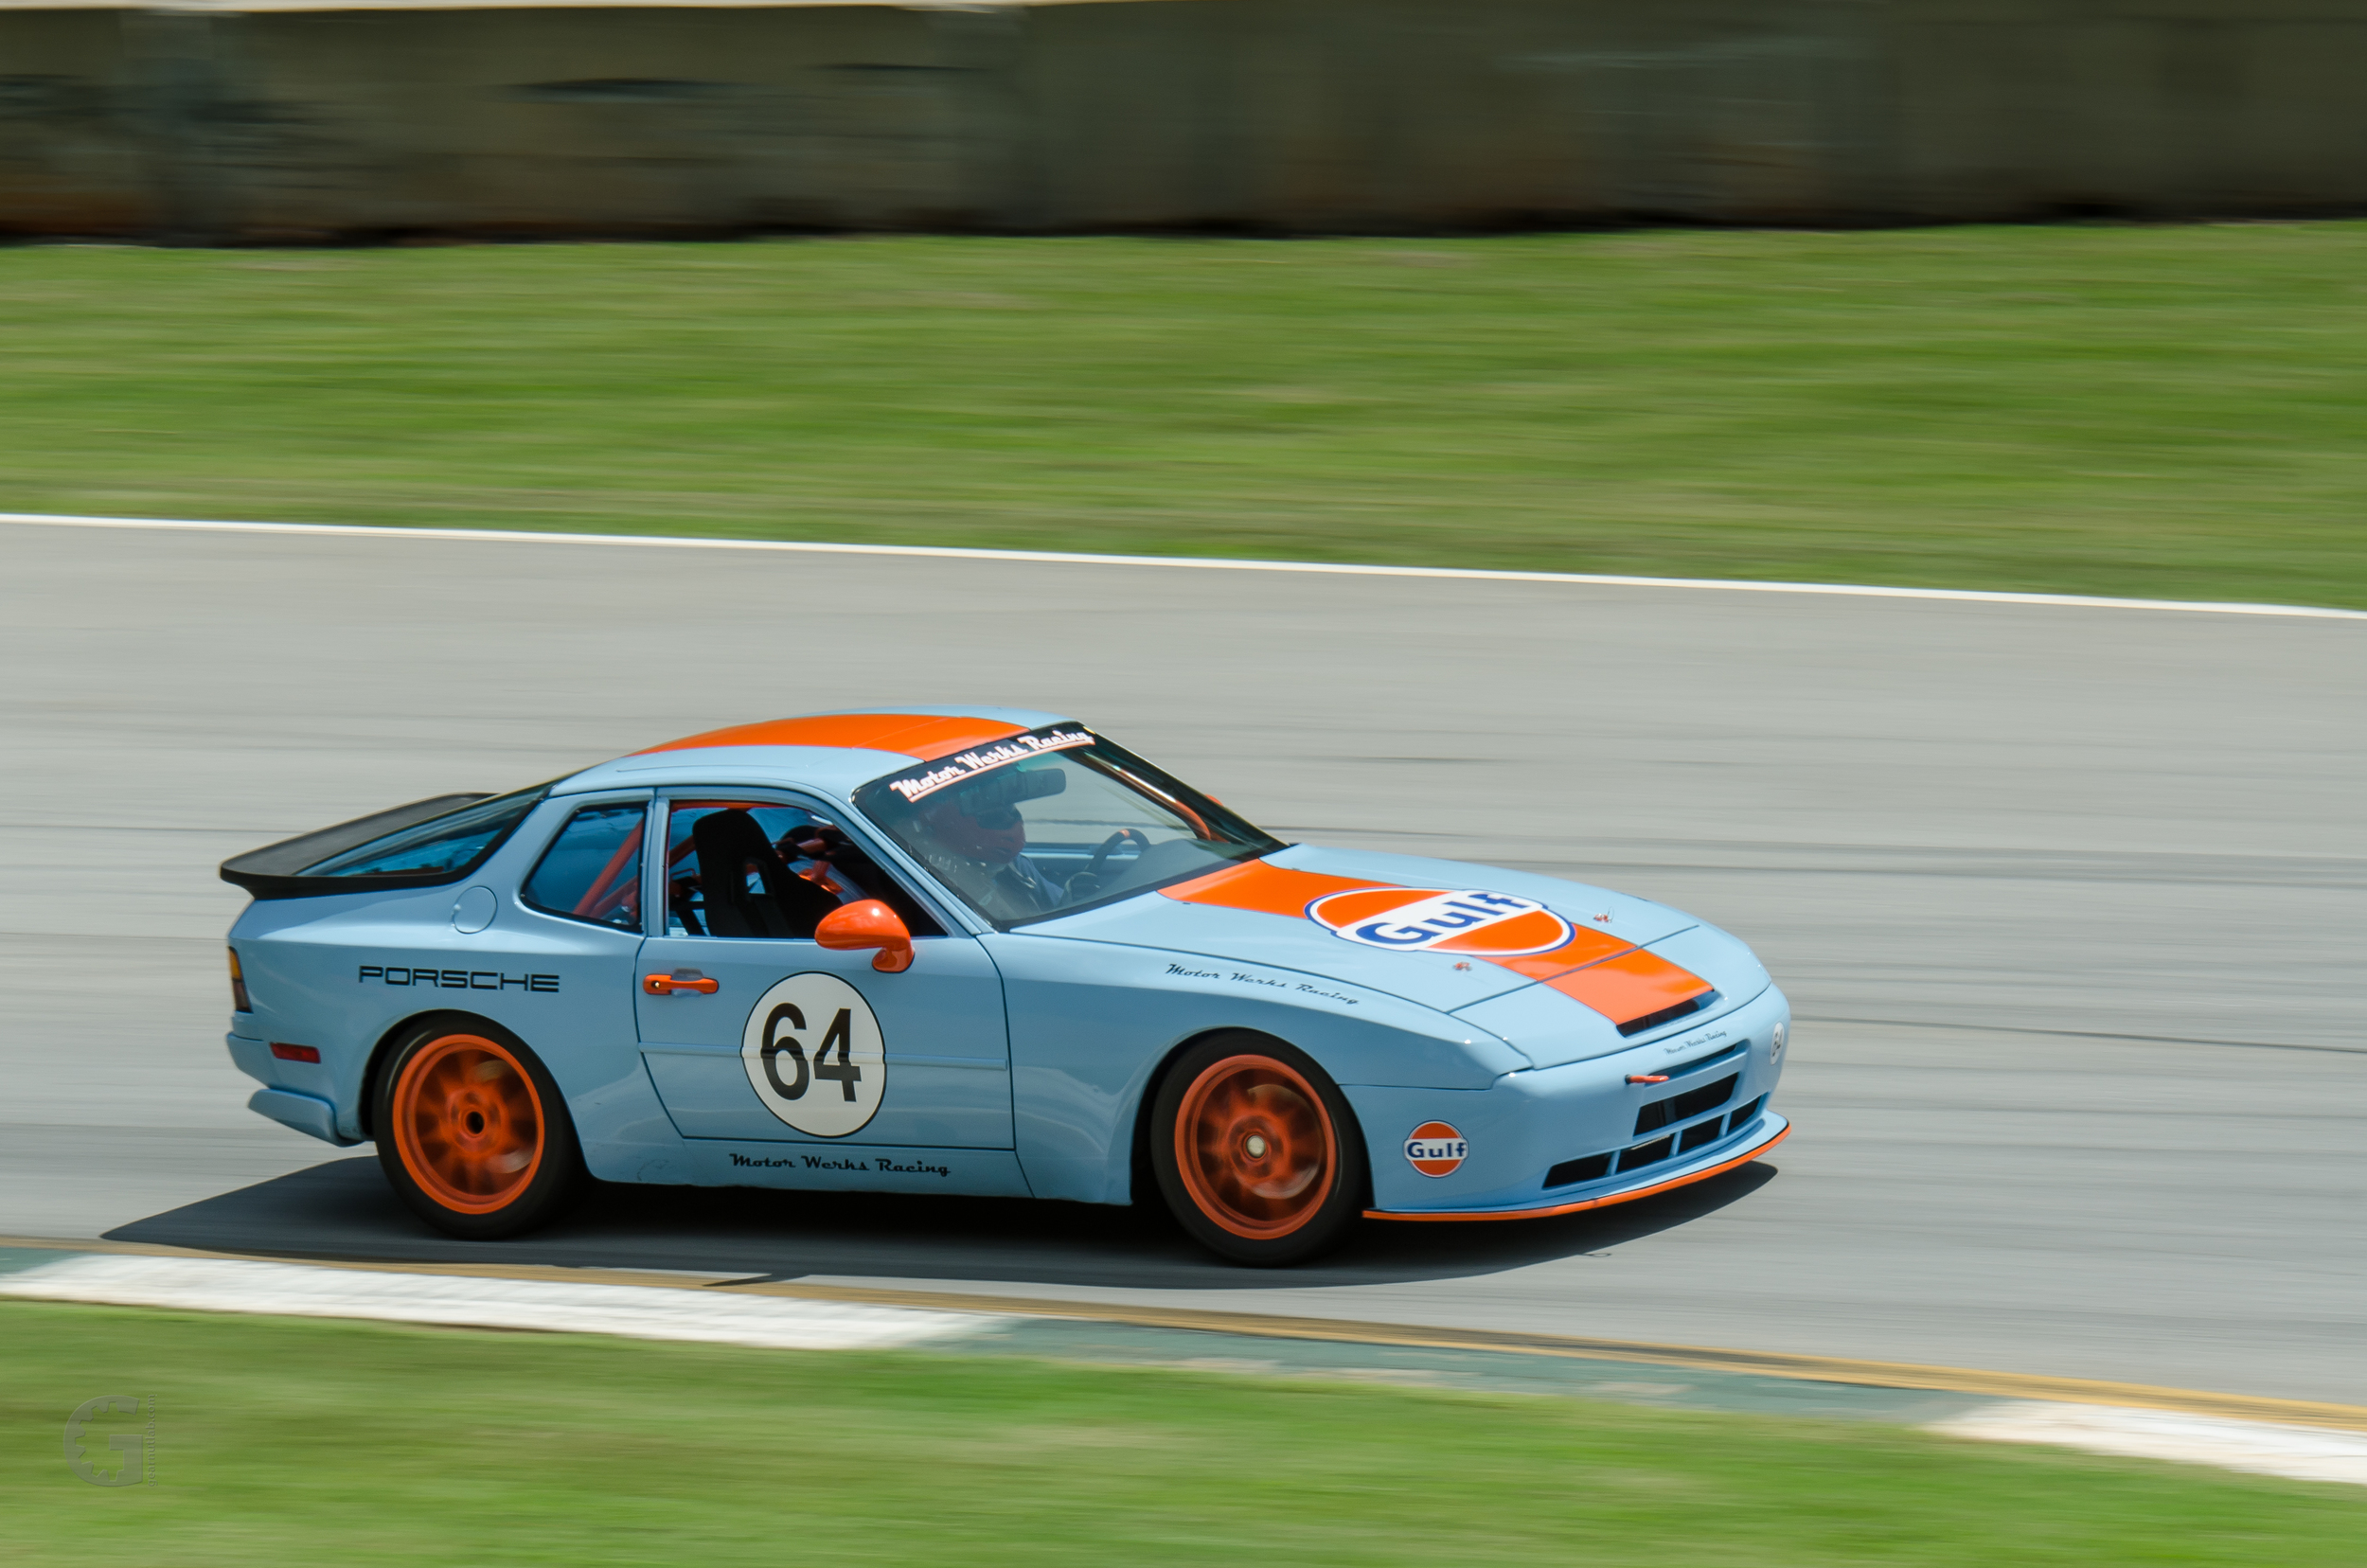 Motor Werks Racing Purpose Built Track Car Porsche 944 with 1.8T Engine Conversion